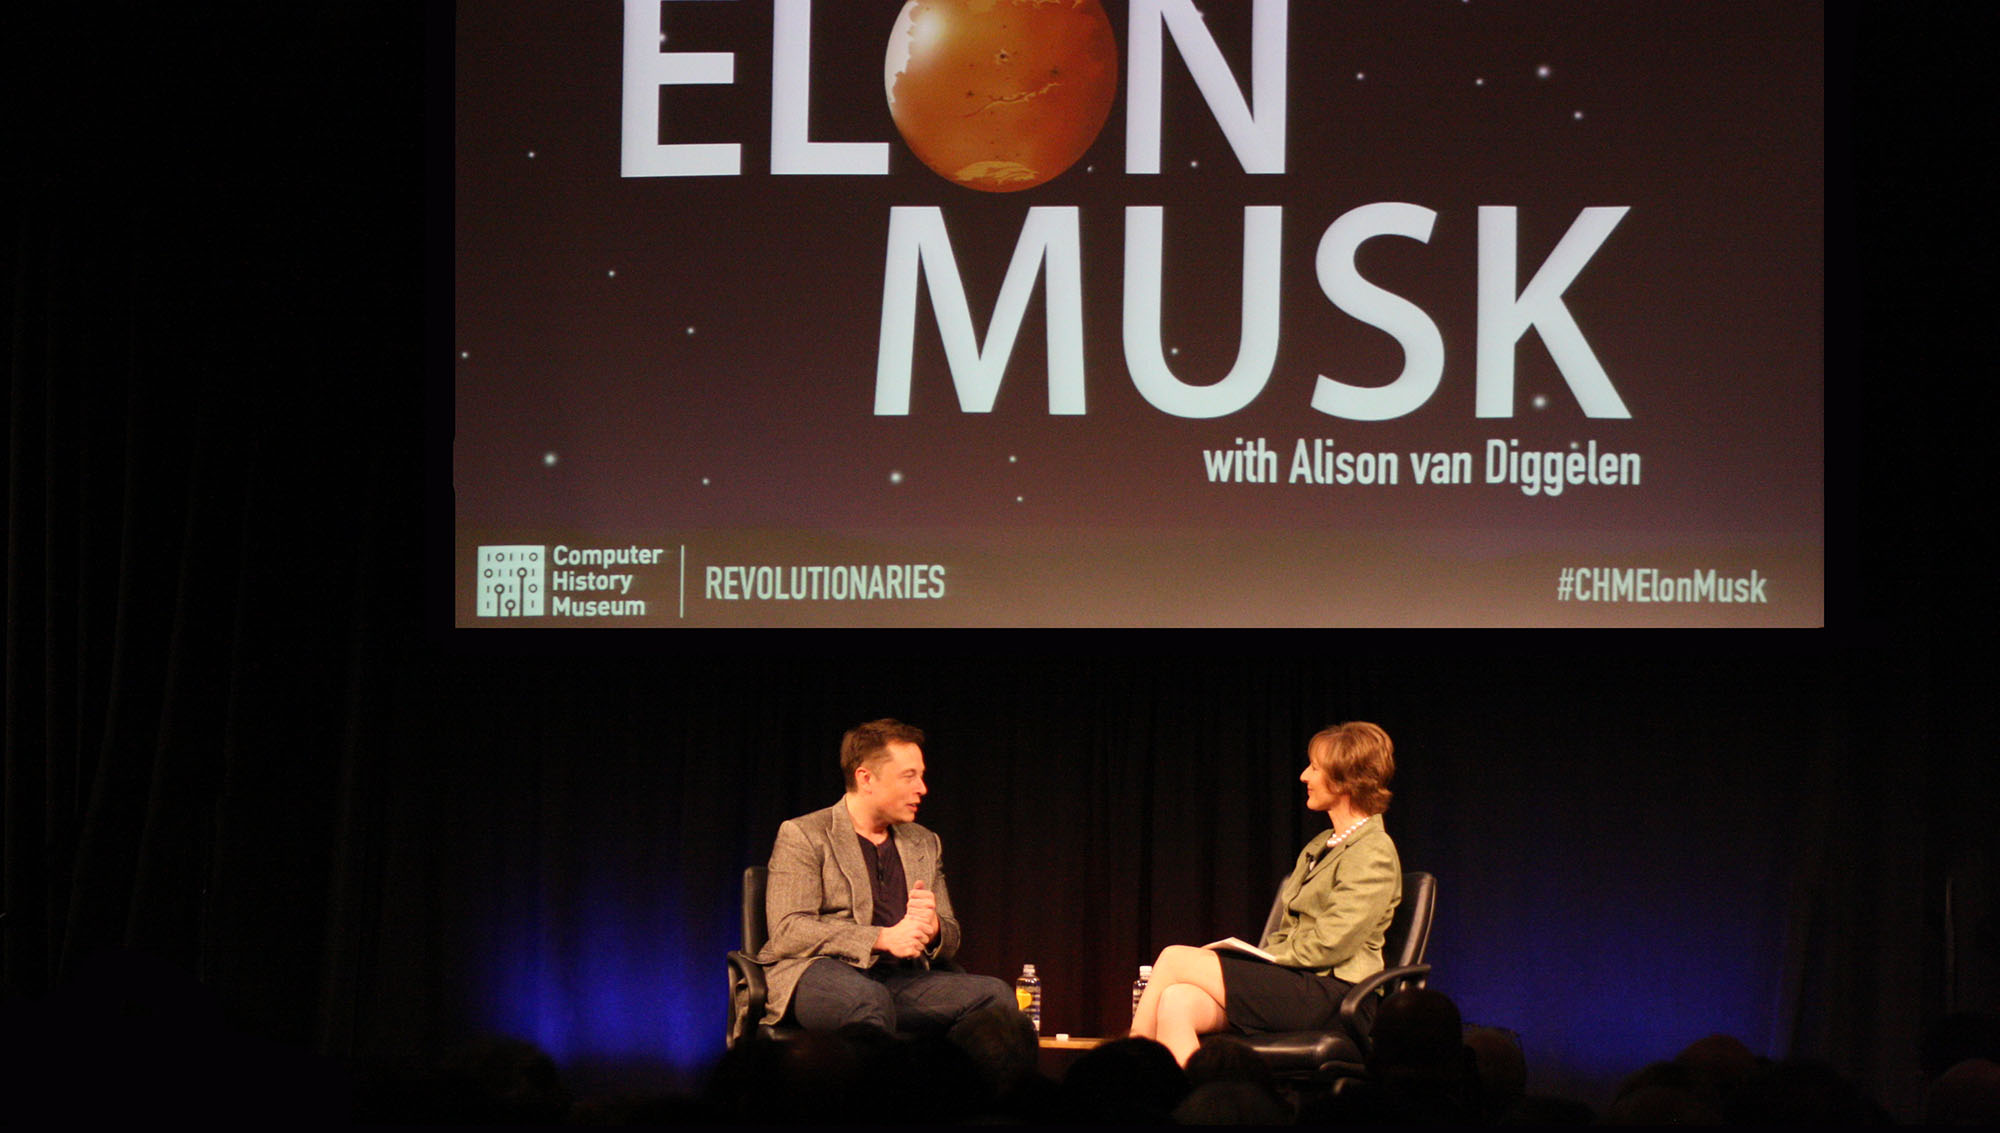 SpaceX's Elon Musk discusses his journey from South Africa to Silicon Valley and why the future for mankind may be a self-sustaining base on Mars.